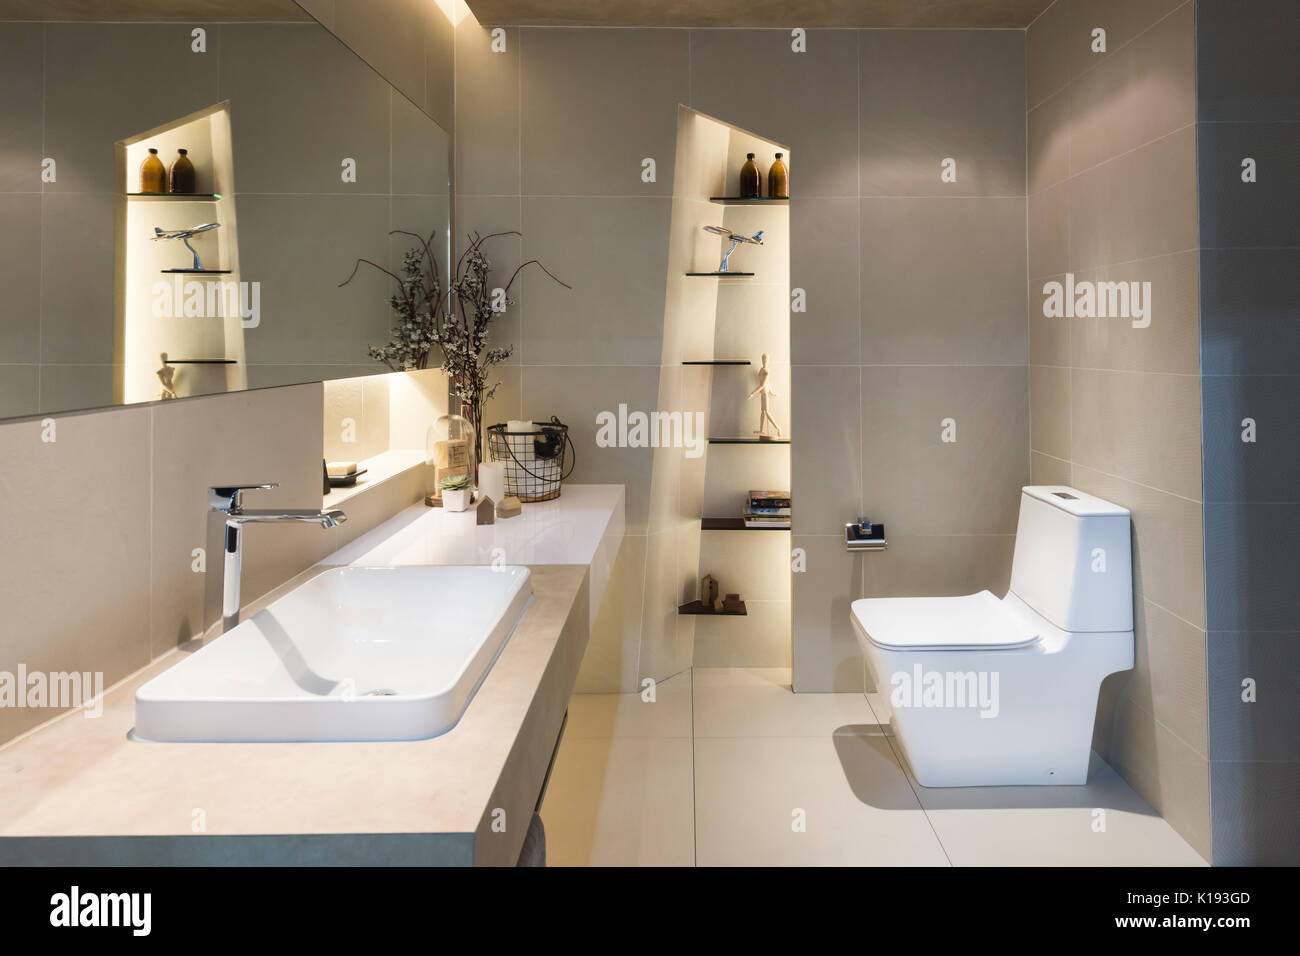 Modern interior of twin bathroom with sinks and toilet at home. Stock Photo